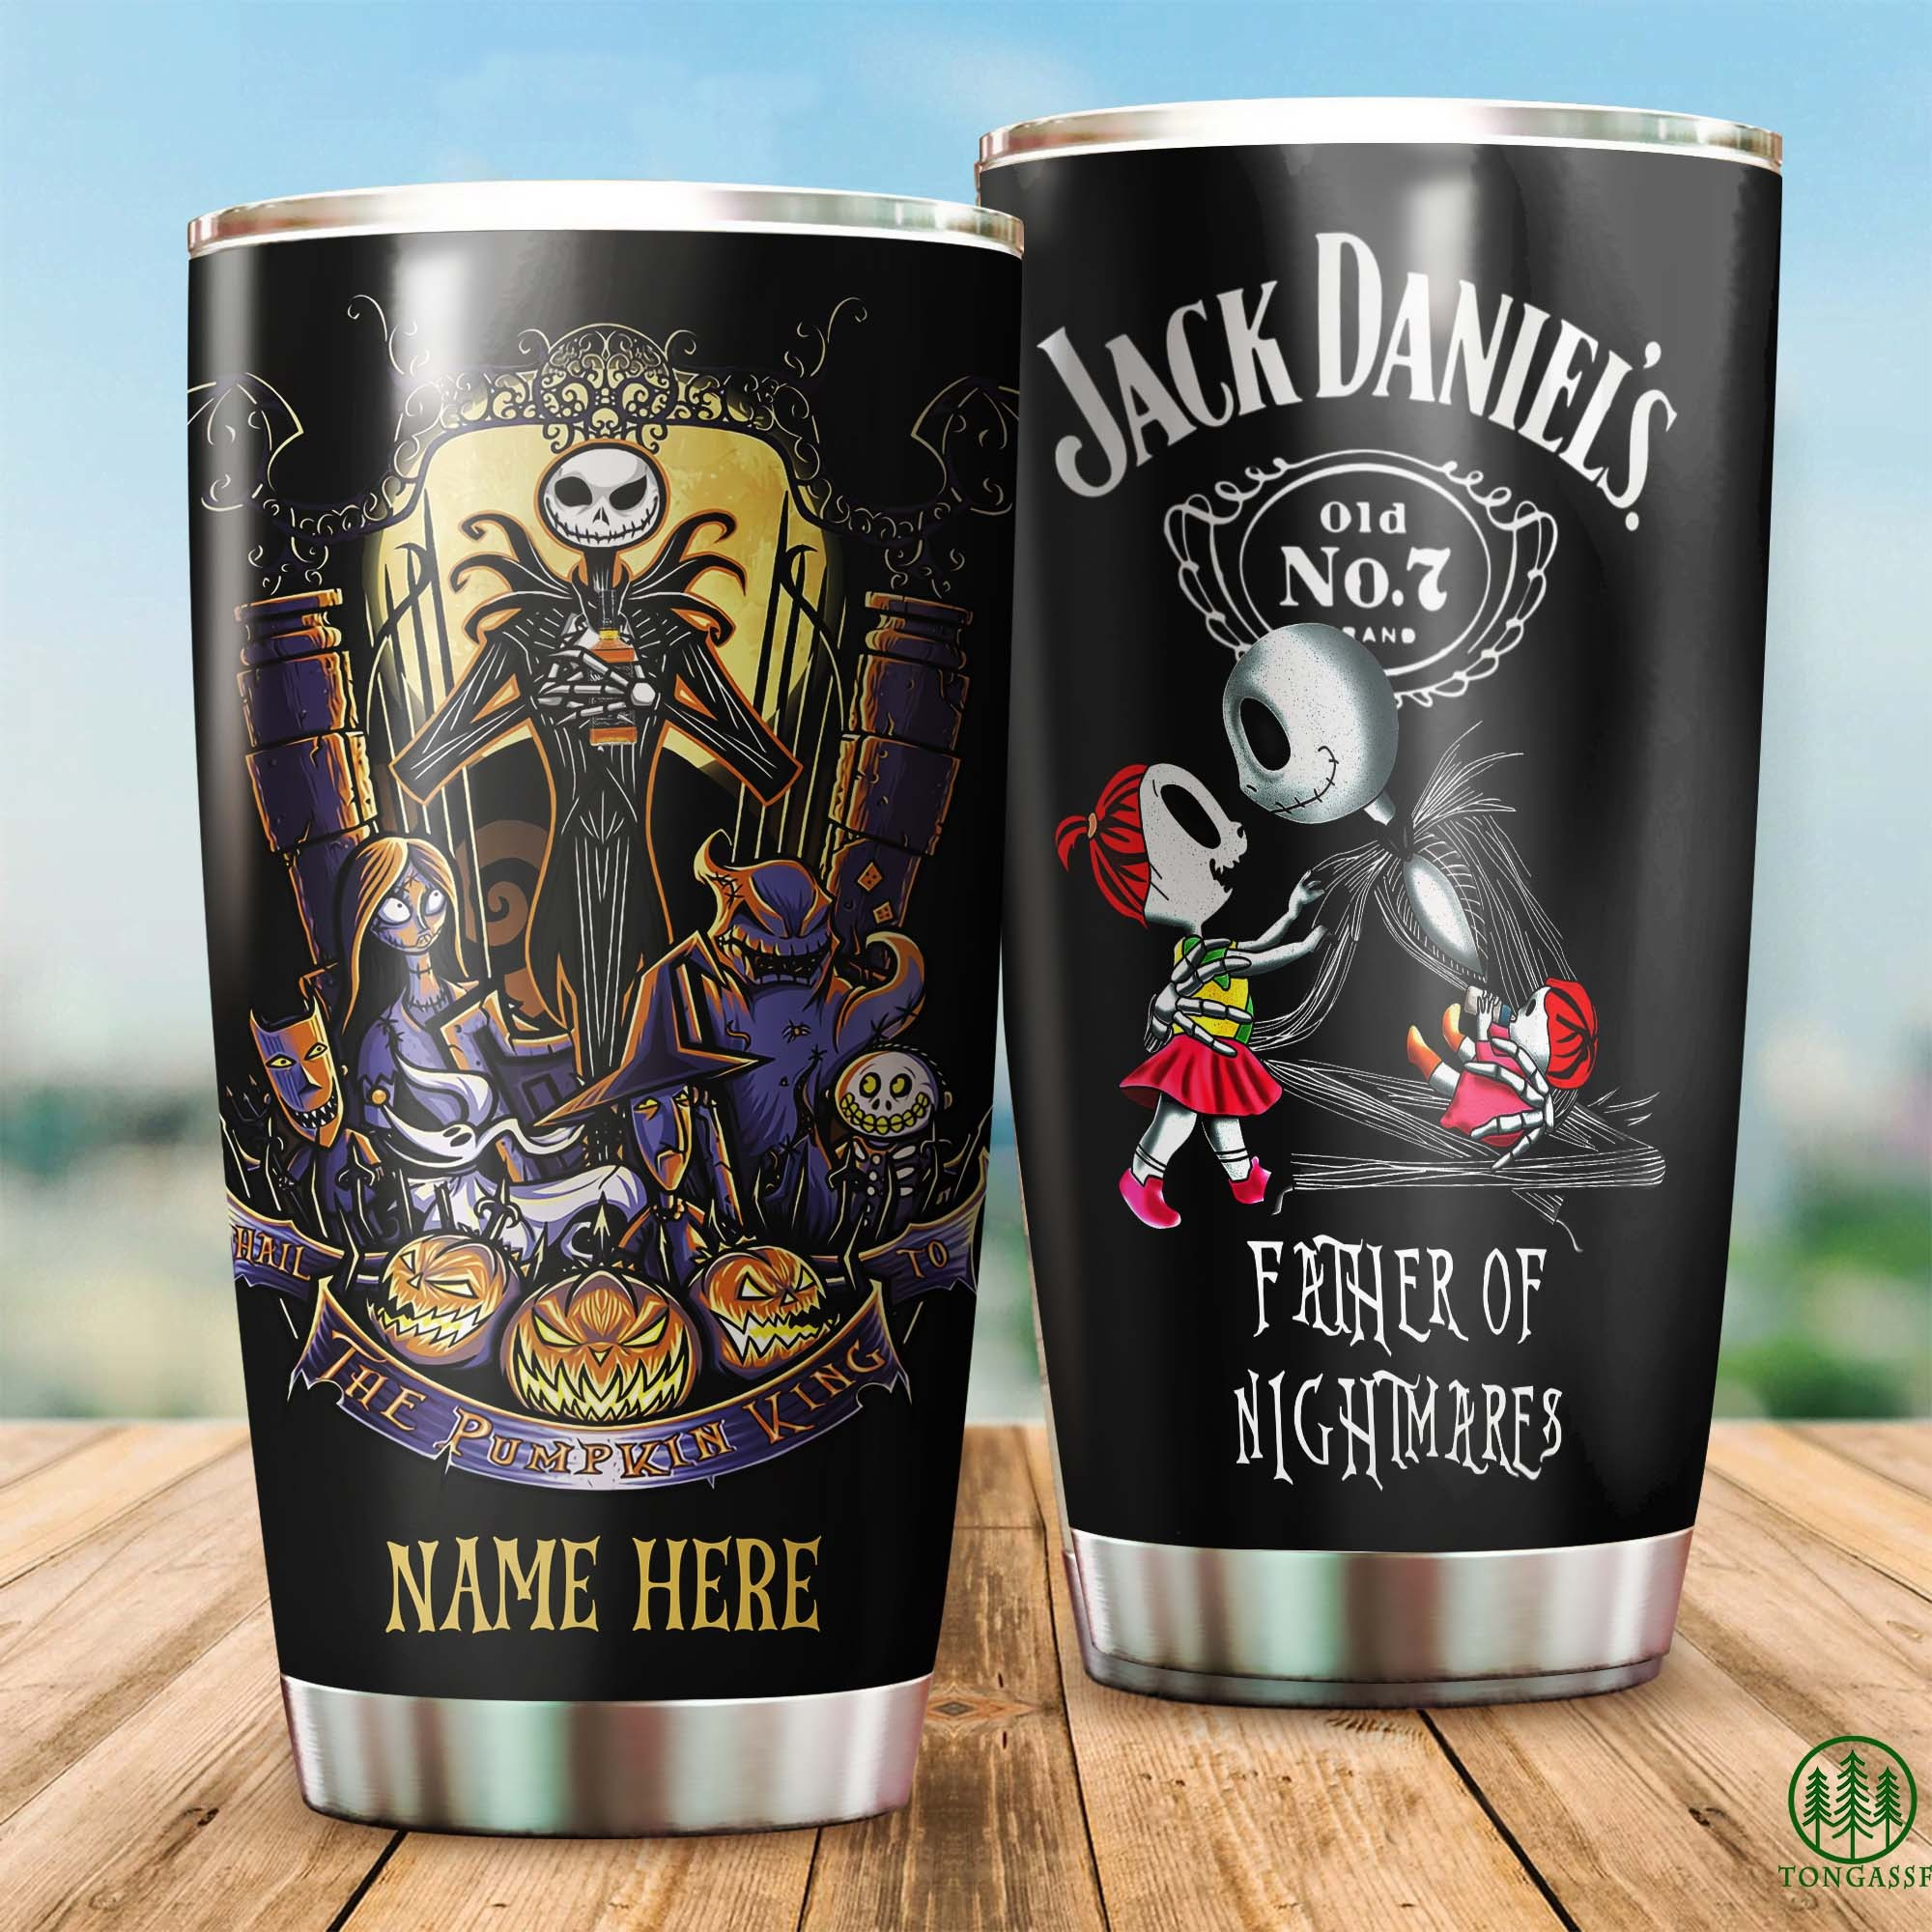 Tumbler glass: best choice to drink